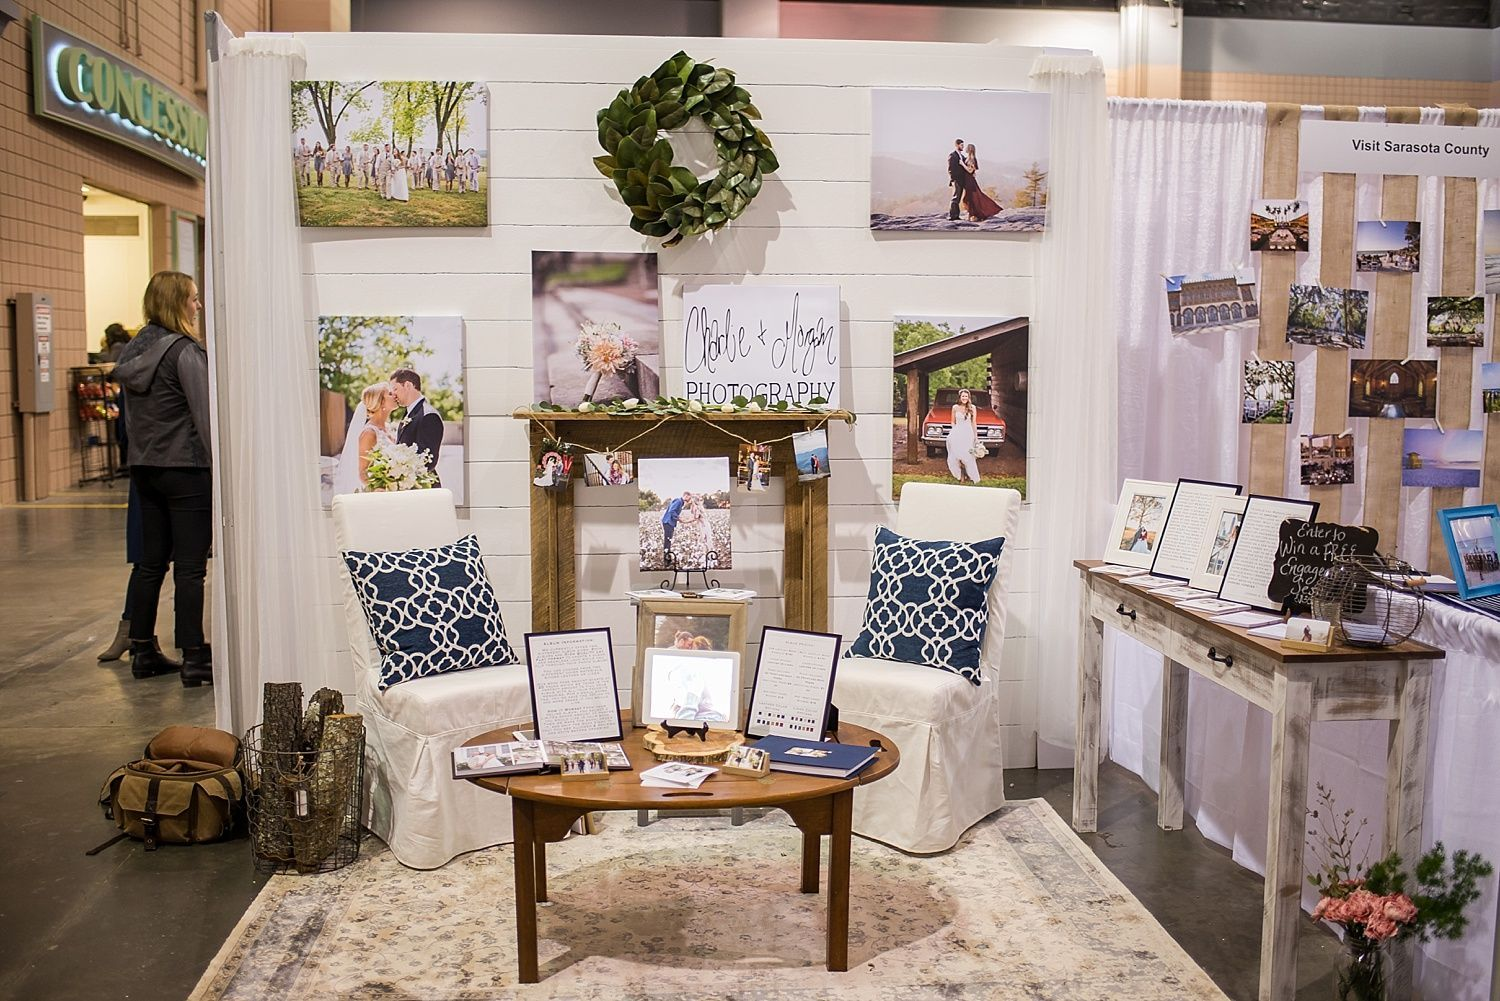 Image Result For Bridal Show Corner Booth Bridal Show Booths Wedding Expo Booth Photographer Booth Display